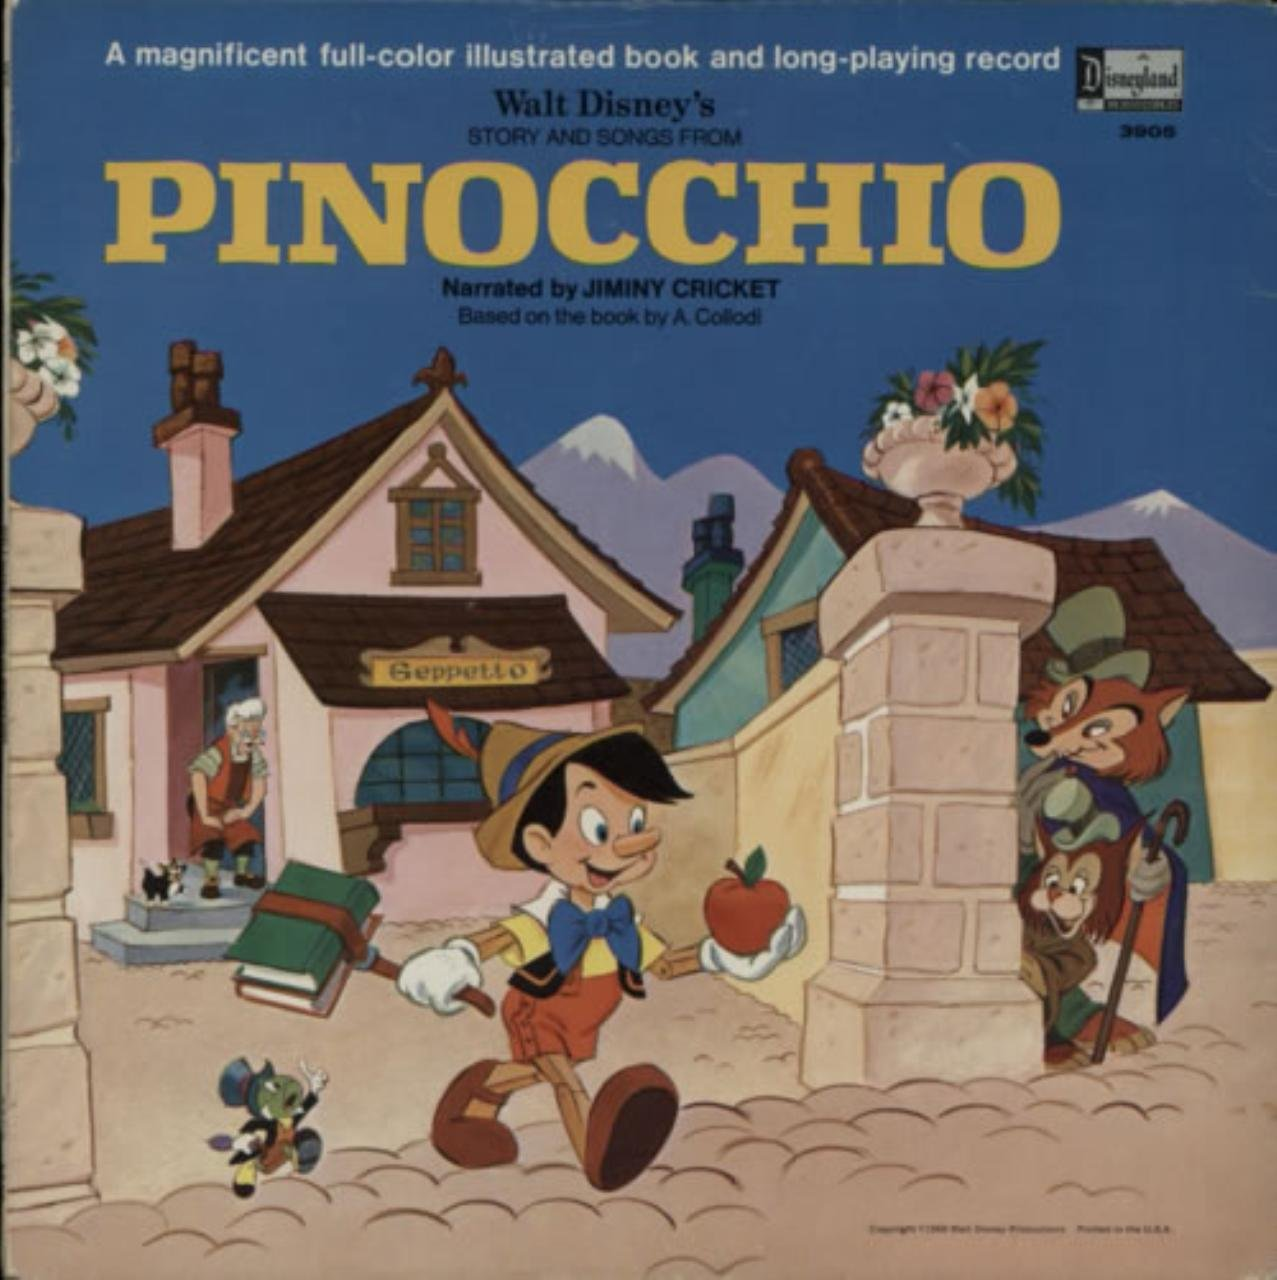 Story And Songs From Pinocchio by Disneyland 3905